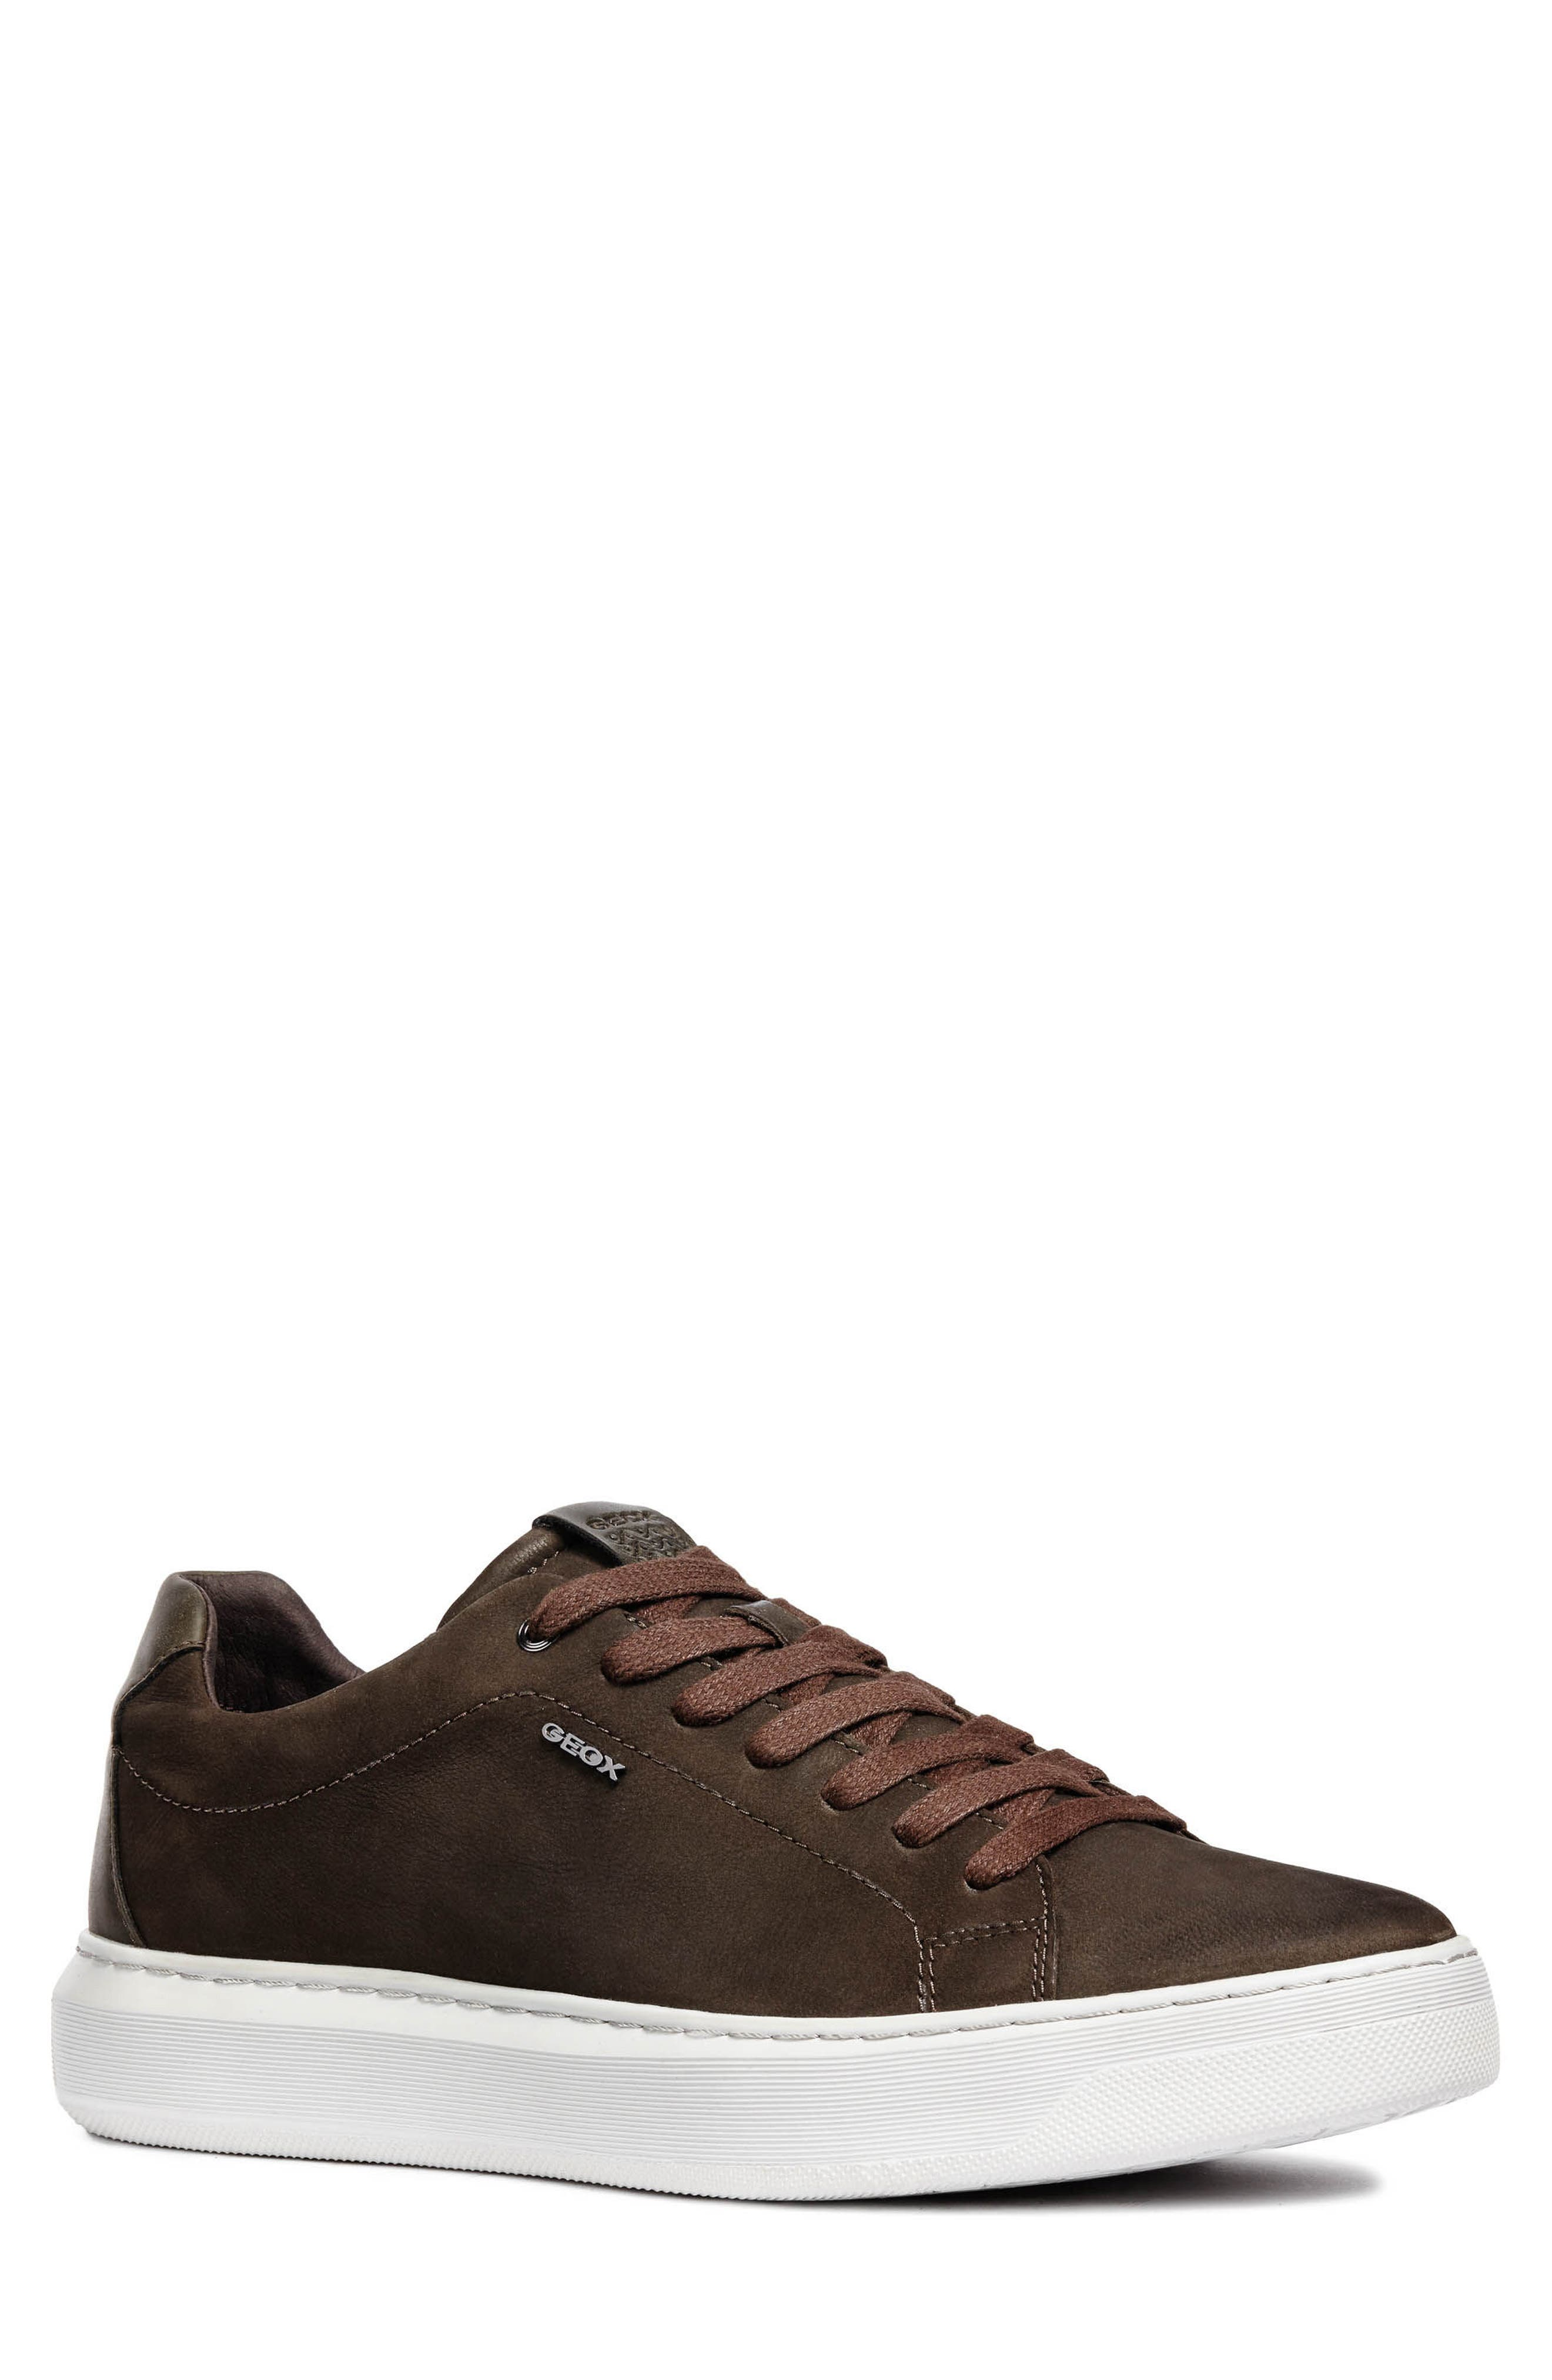 Deiven 5 Low Top Sneaker,                             Main thumbnail 1, color,                             DARK COFFEE LEATHER